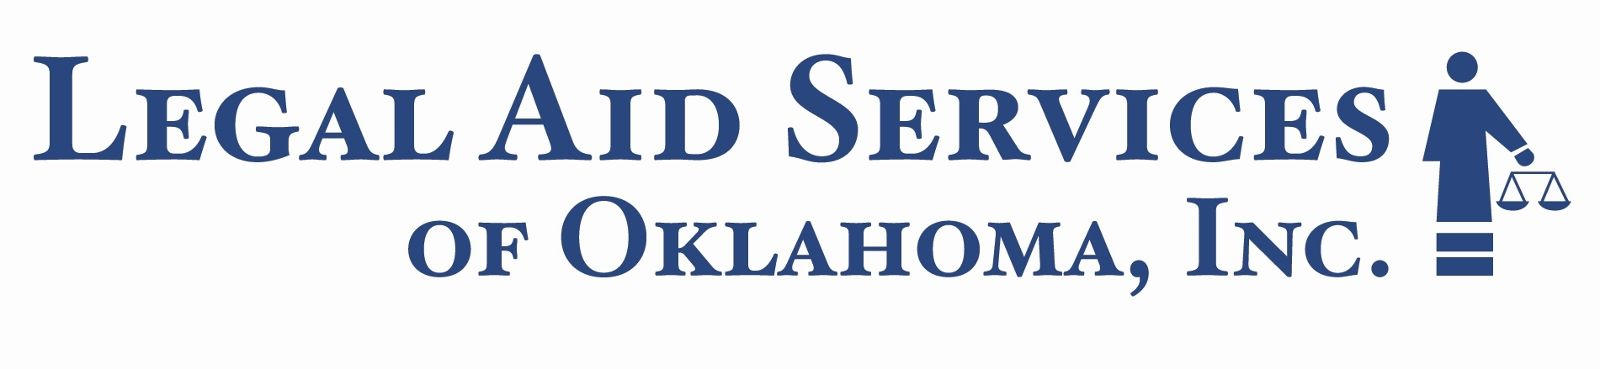 Legal Aid Services of Oklahoma, Inc.